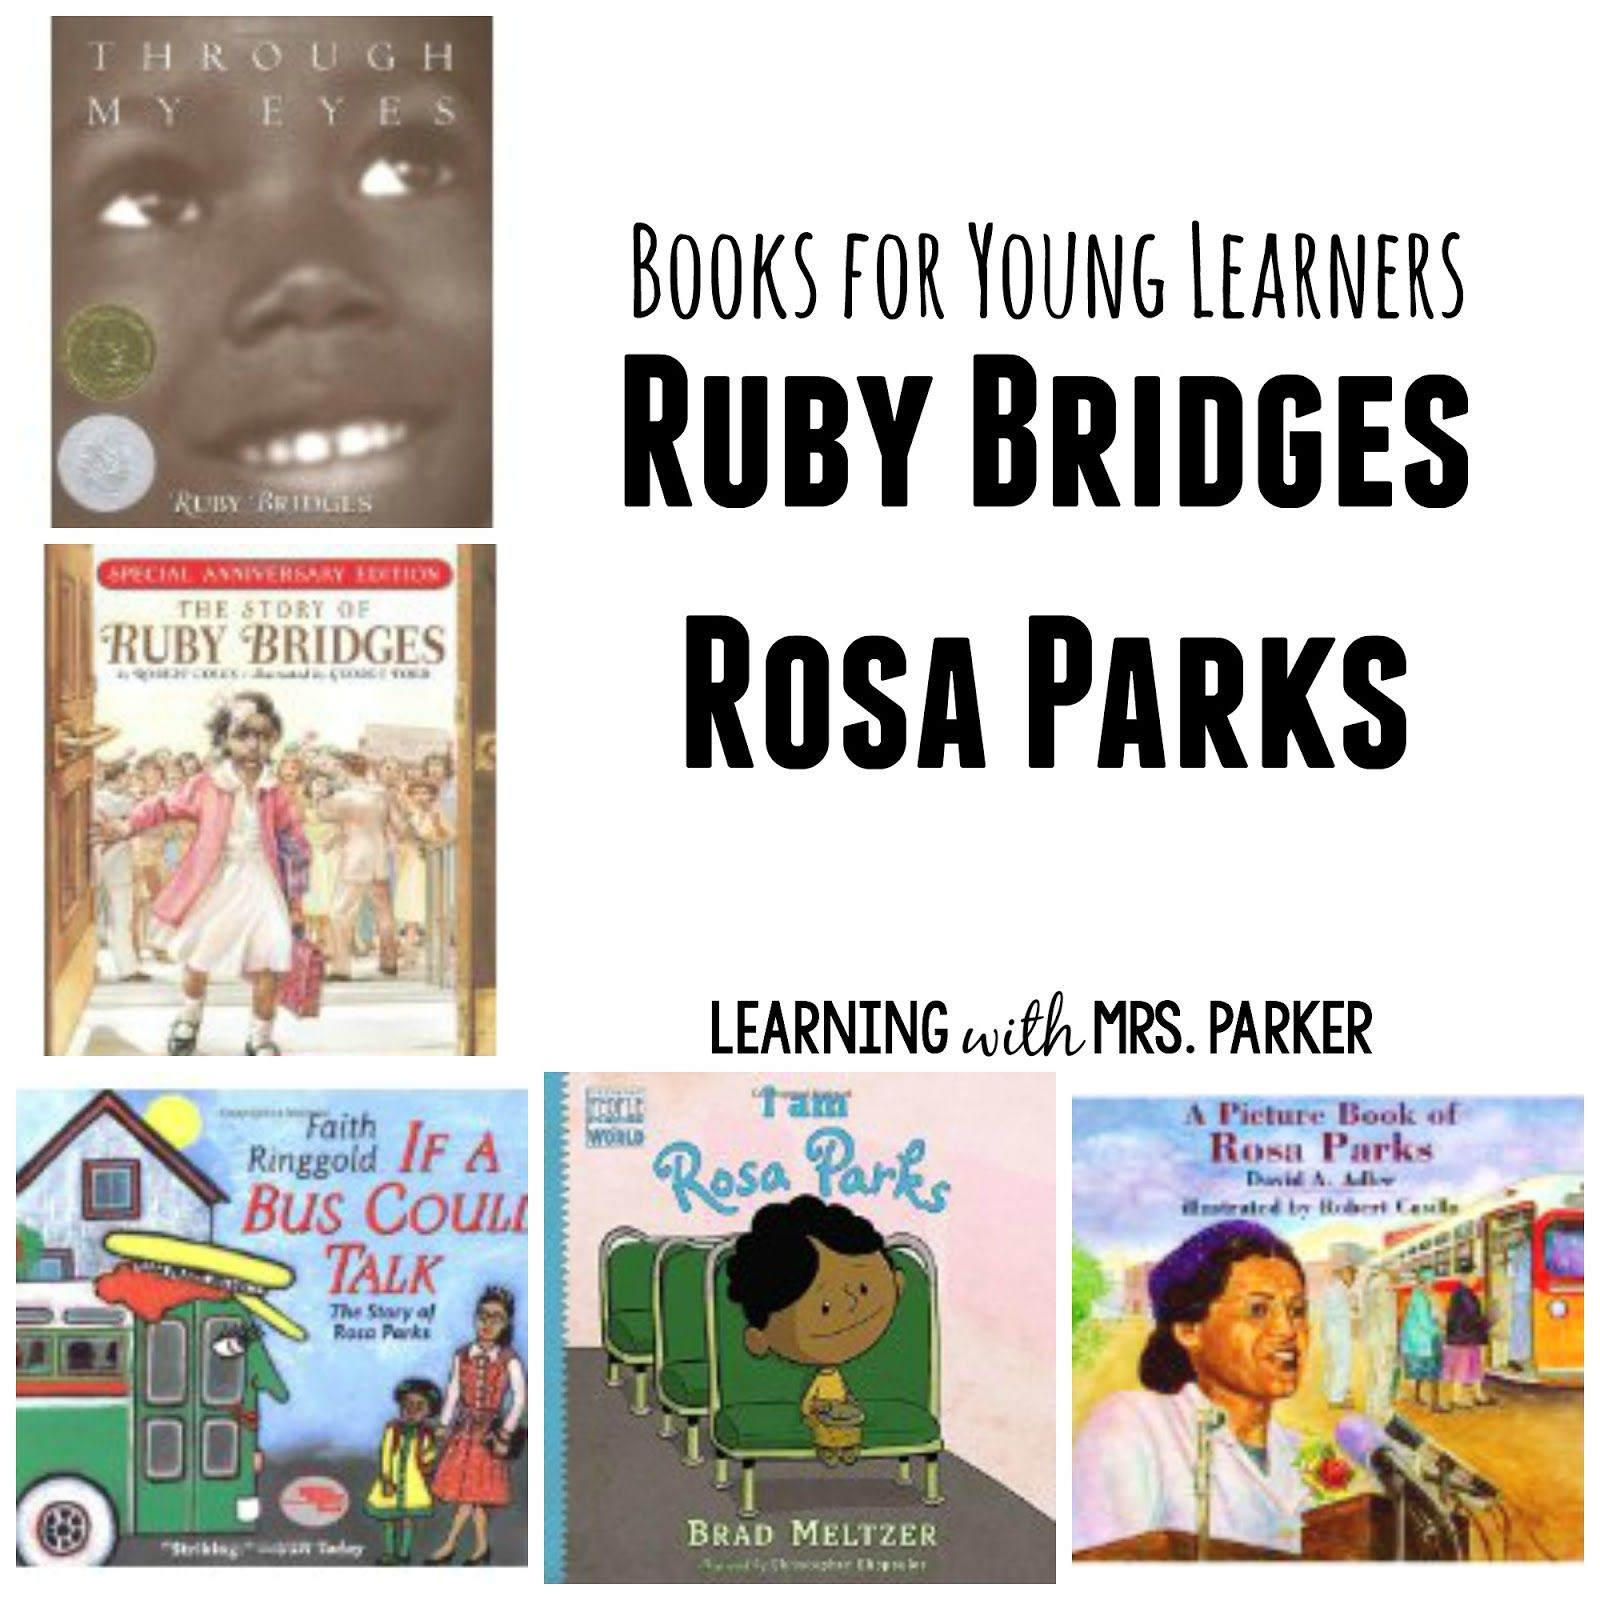 A Collection Of Books To Use With Young Learners To Teach